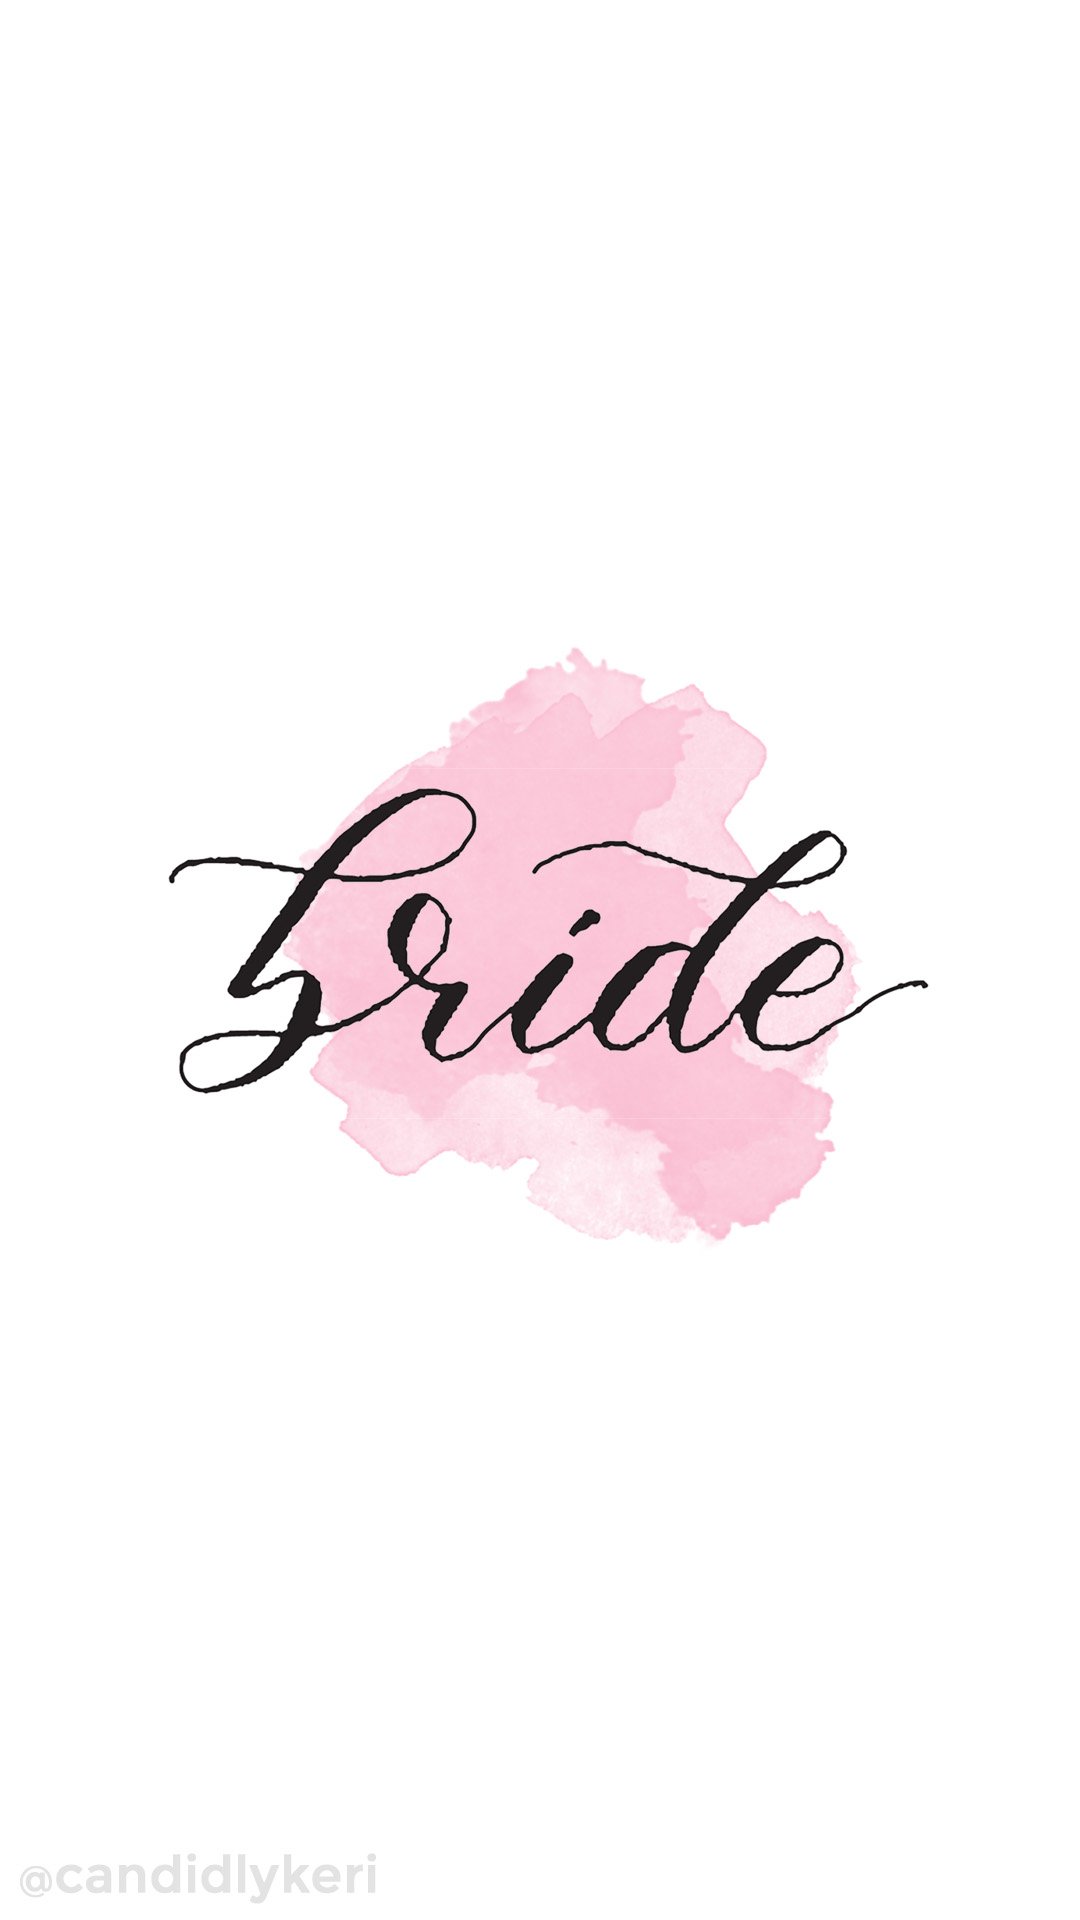 Bridal wallpaper pink watercolor free download mobile desktop computer